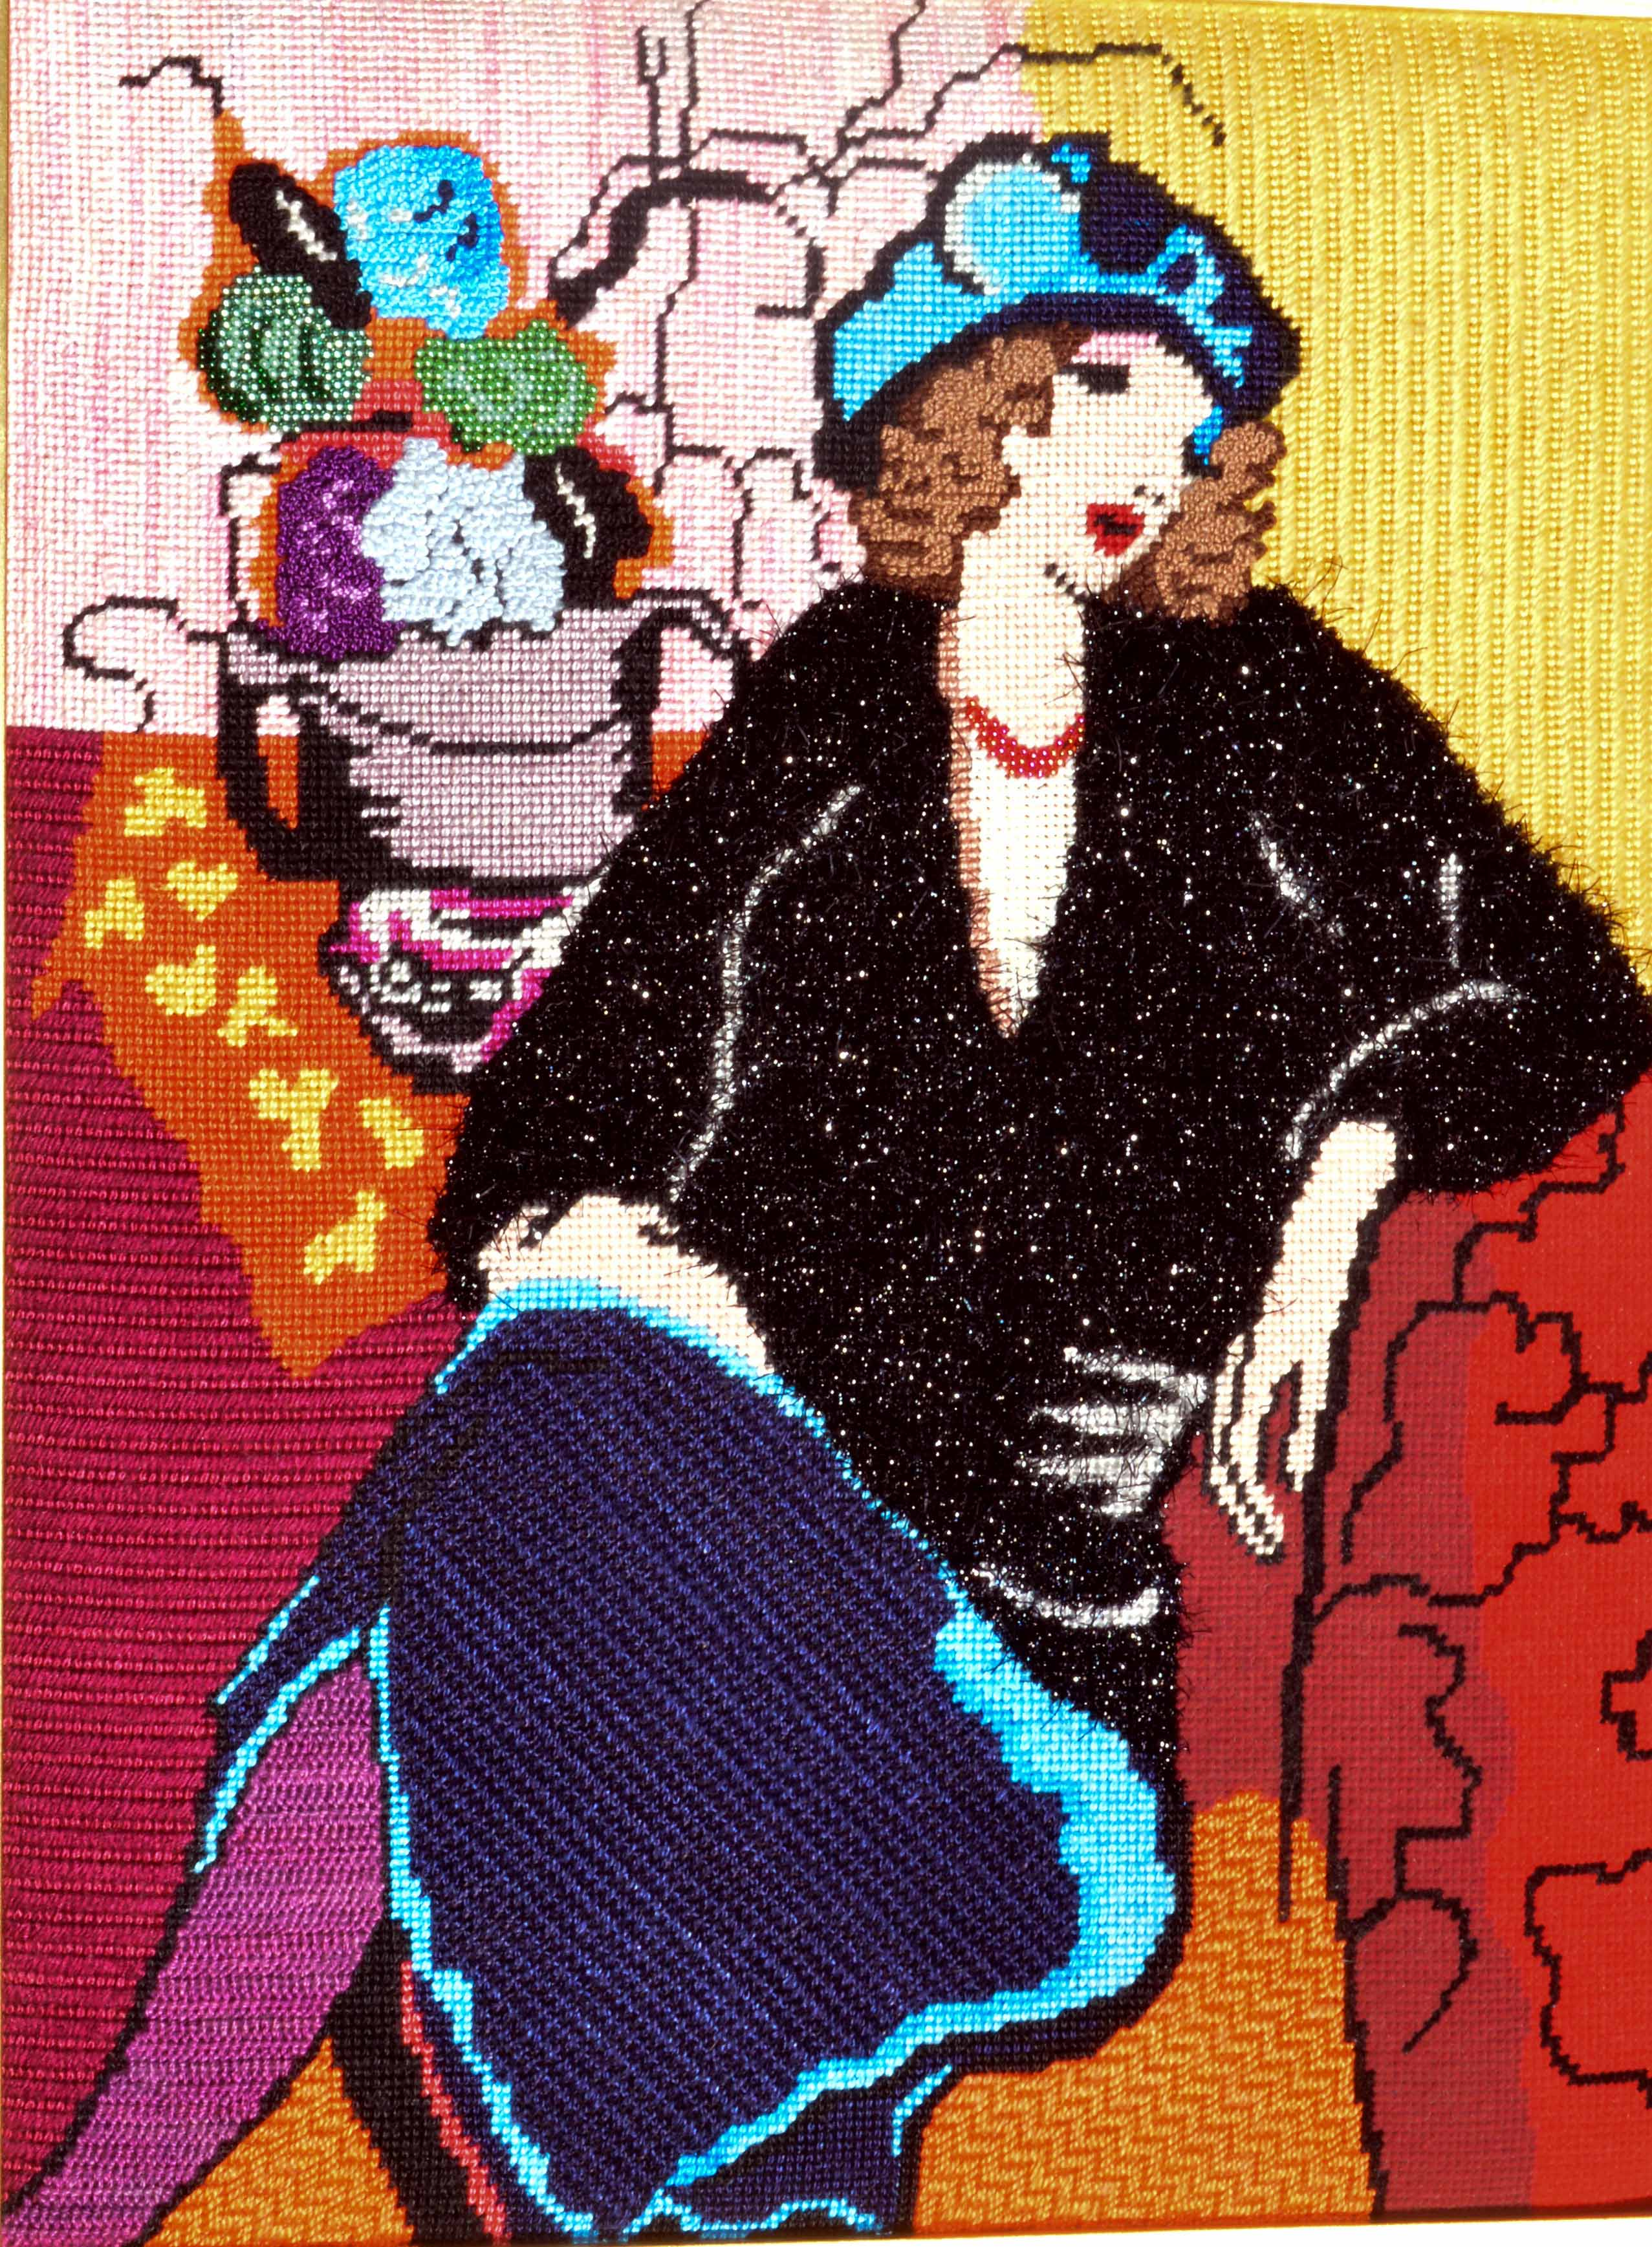 Needlepoint-SeatedLady.jpg